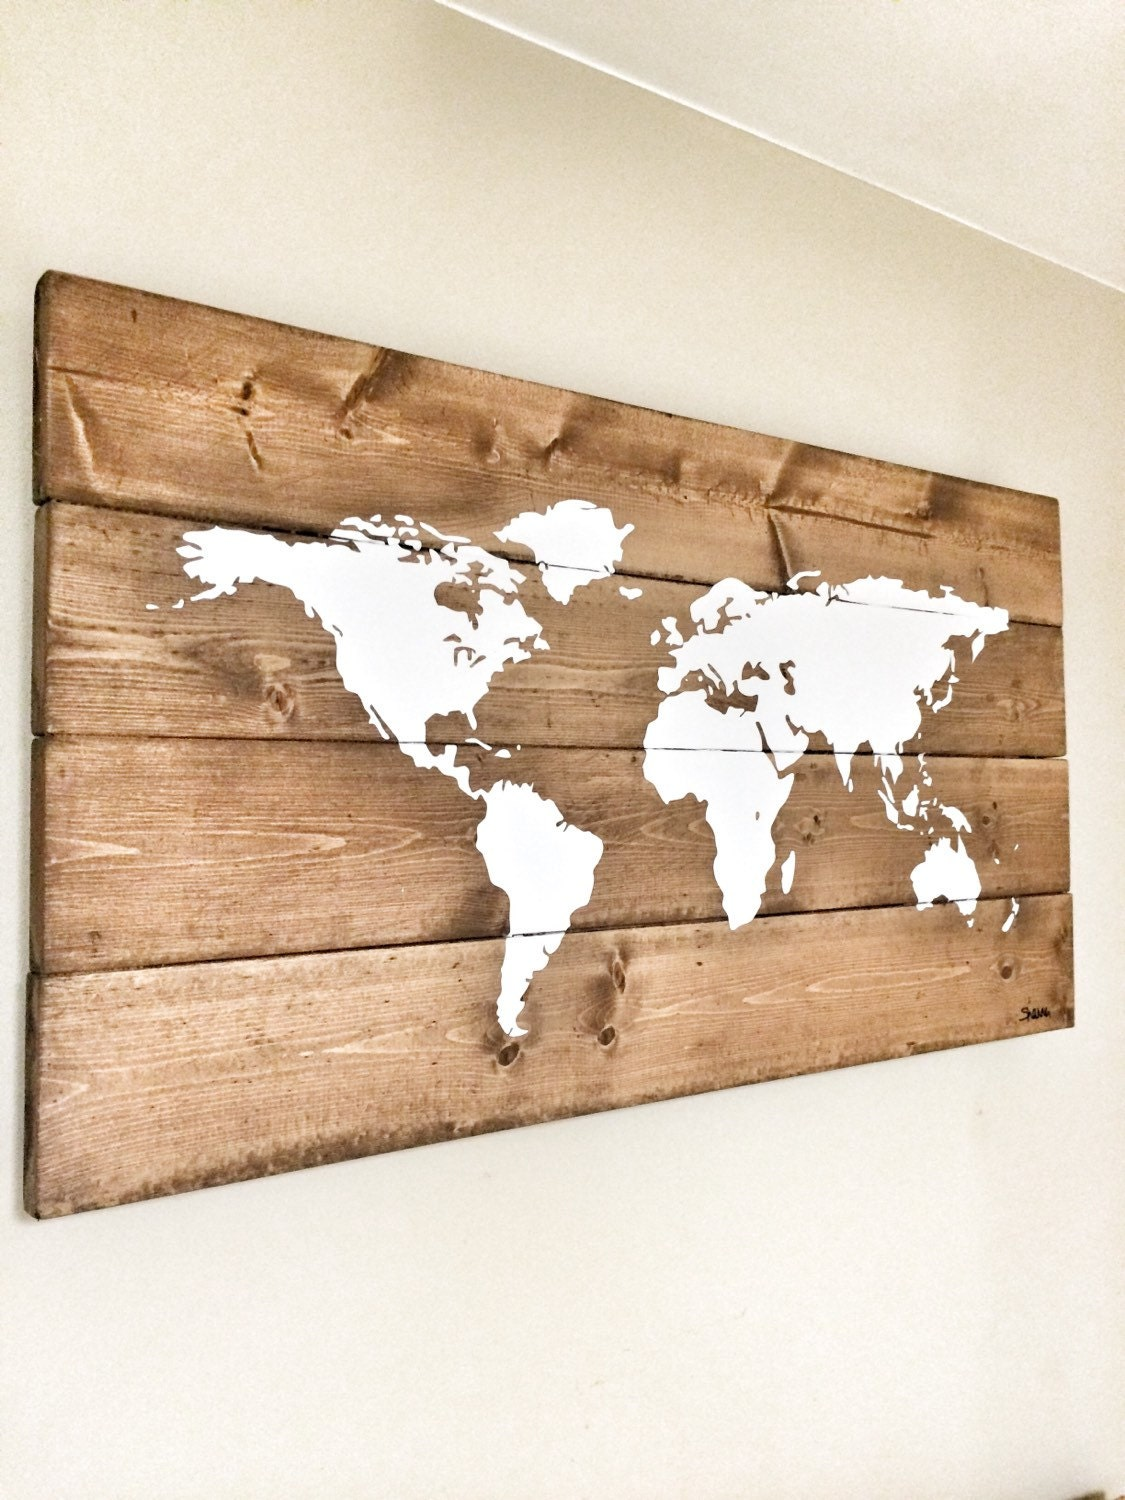 Diy corkboard map crafthubs my cork board map of united states put wood map etsy us map cork board gumiabroncs Choice Image